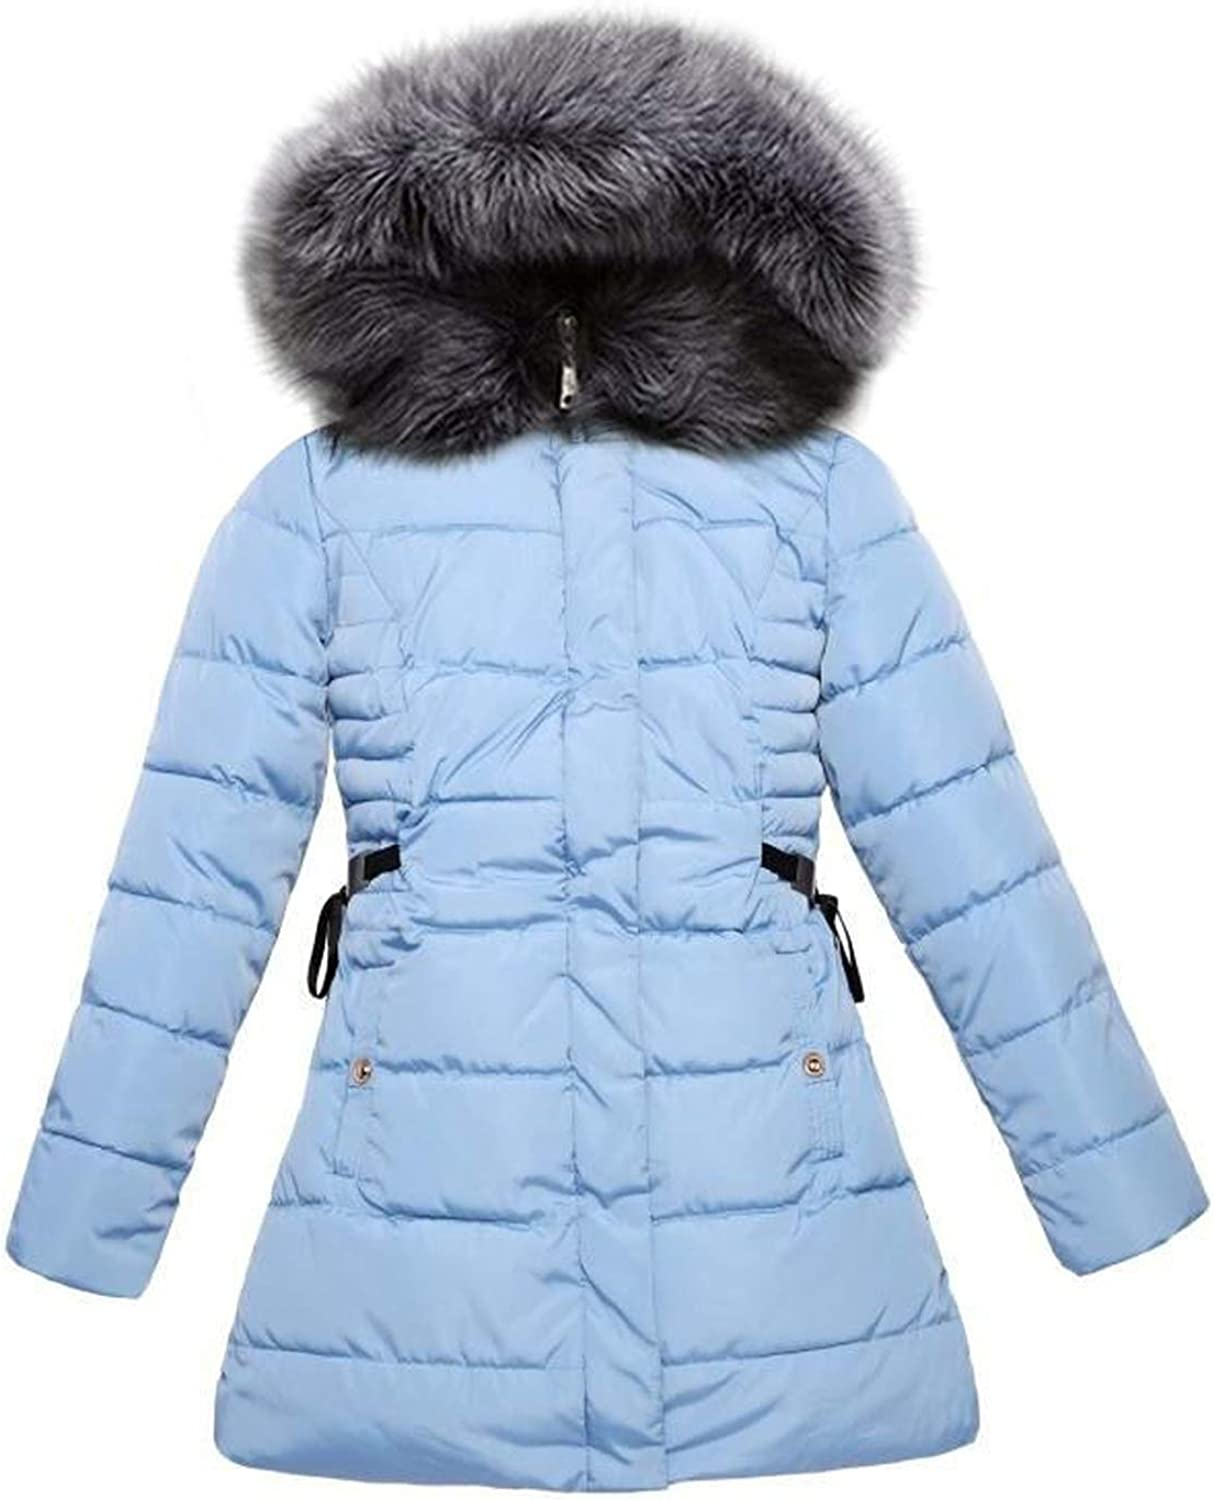 Winter Jacket Winter Coat Women Real Fox Fur Collar Warm Woman Parka Outerwear Down Jacket